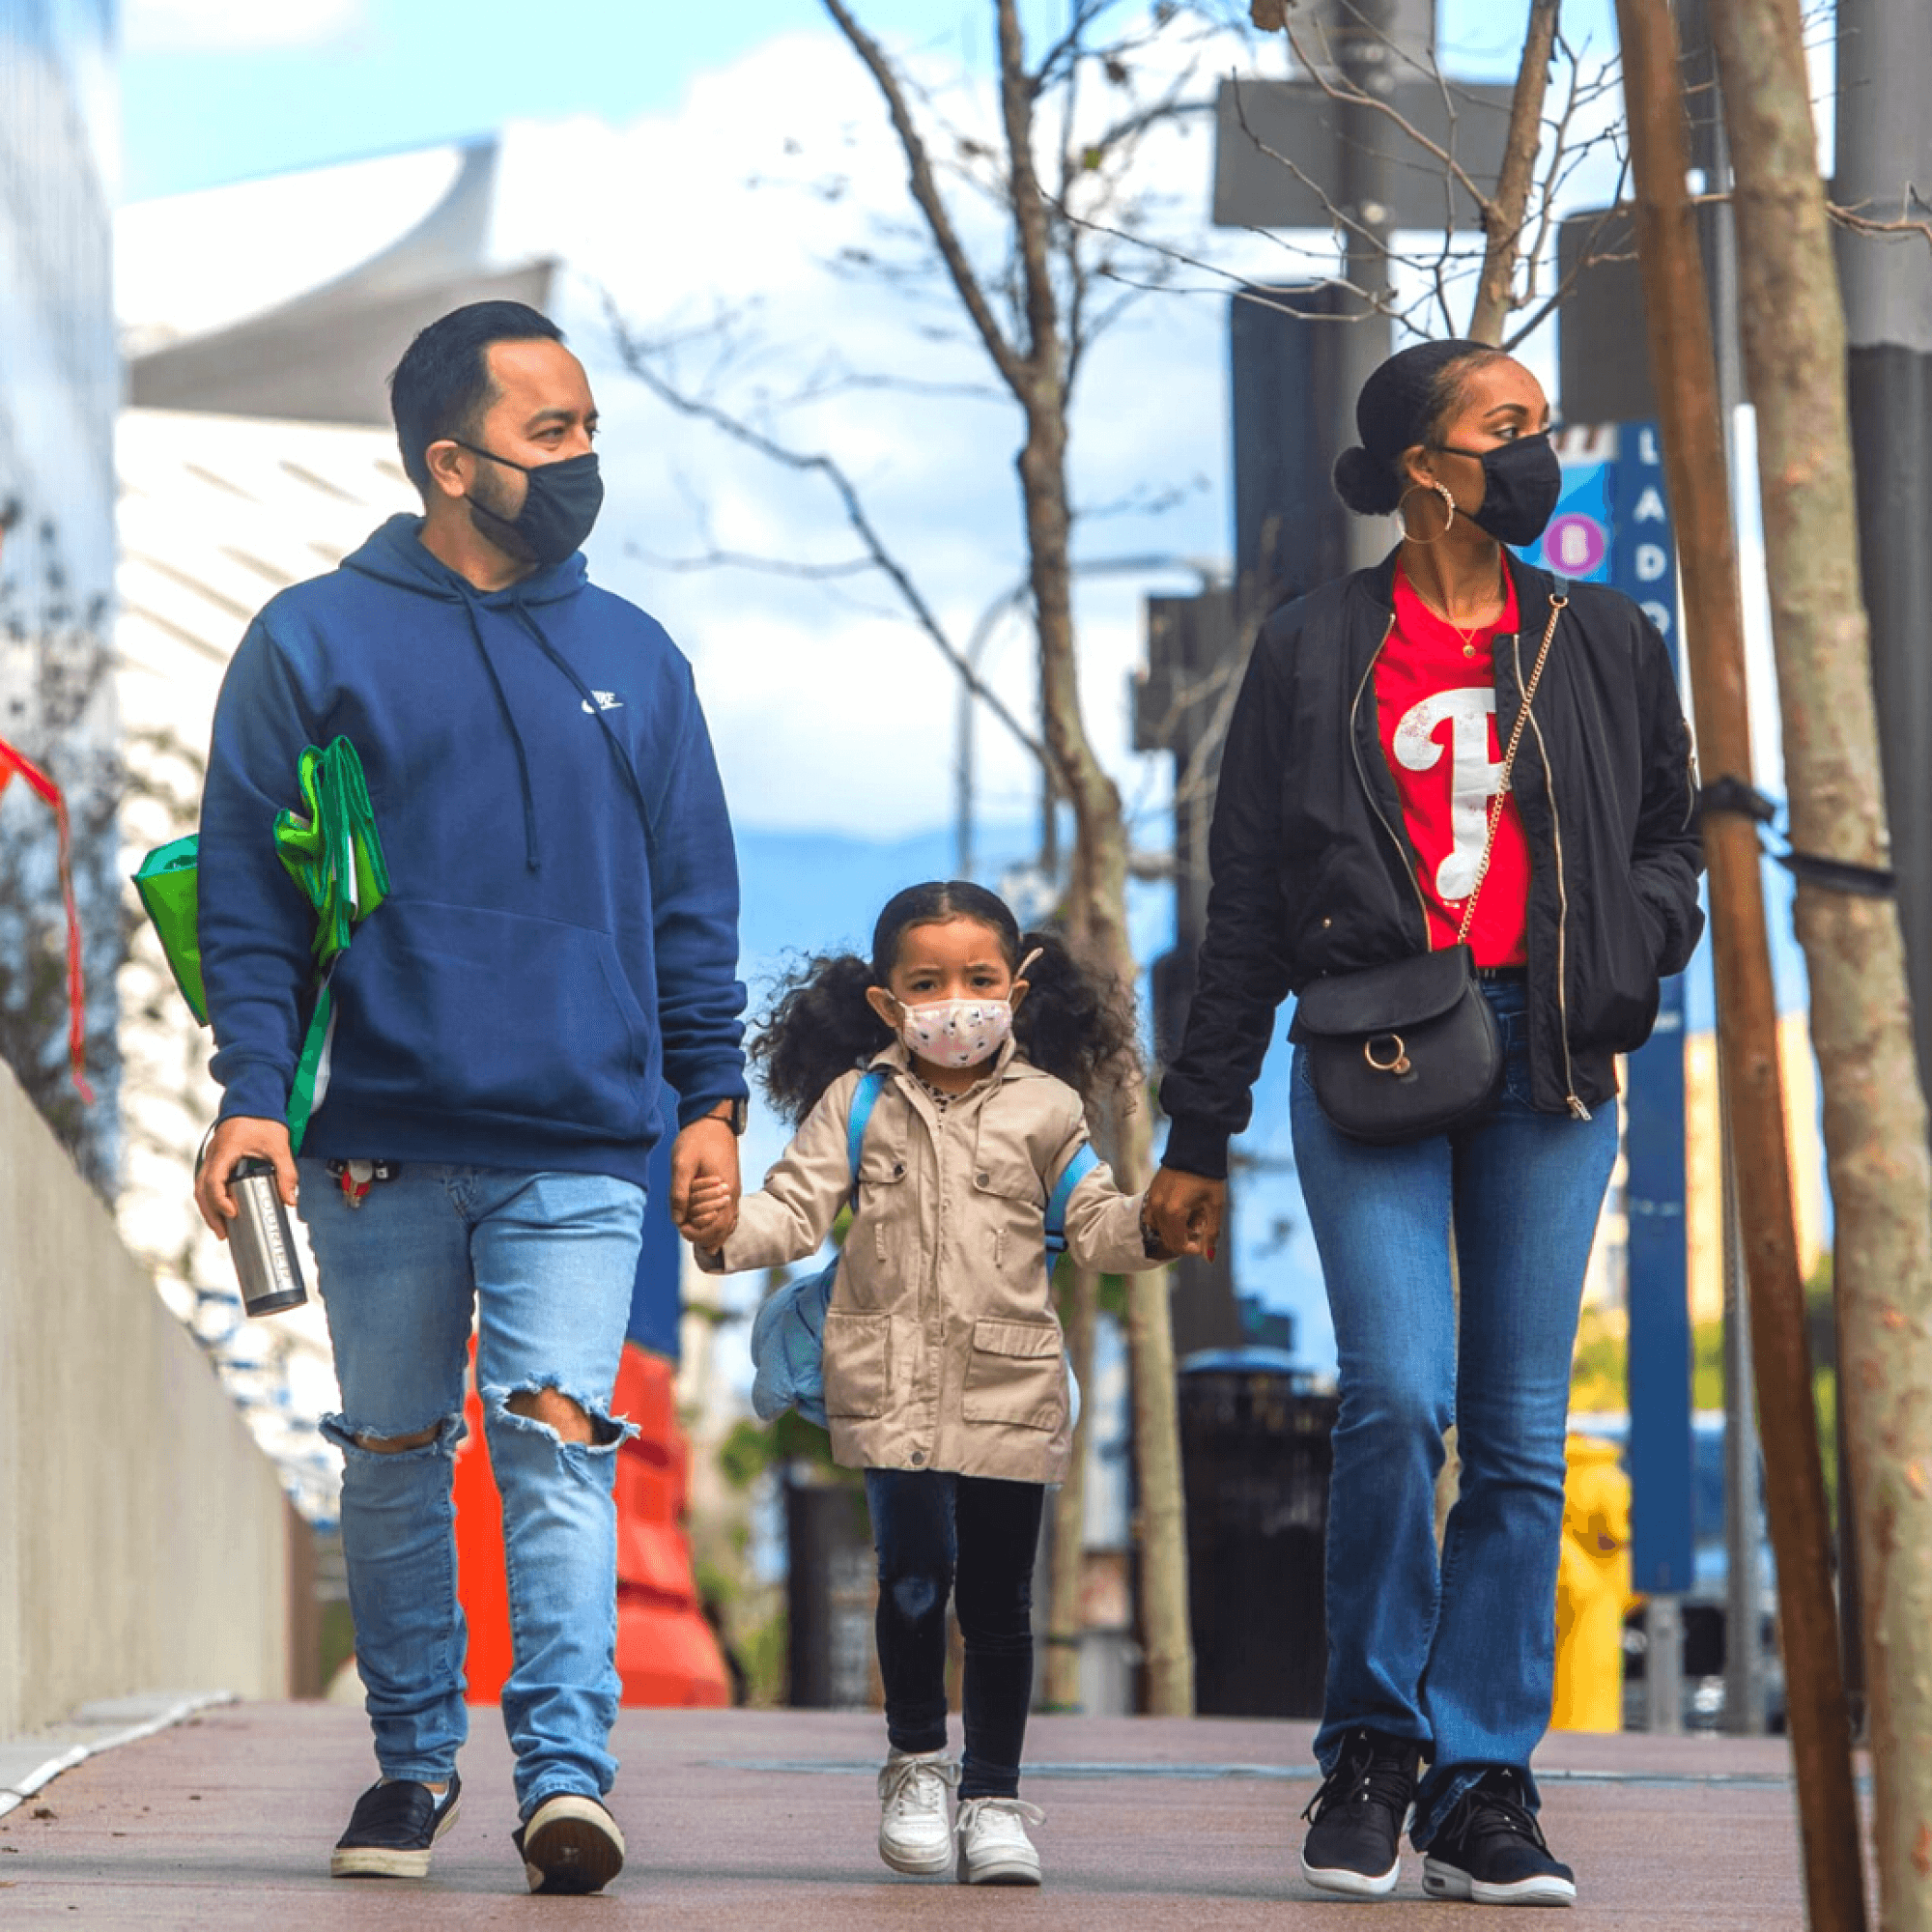 Family walking down street, parents and child wearing face masks and holding hands.